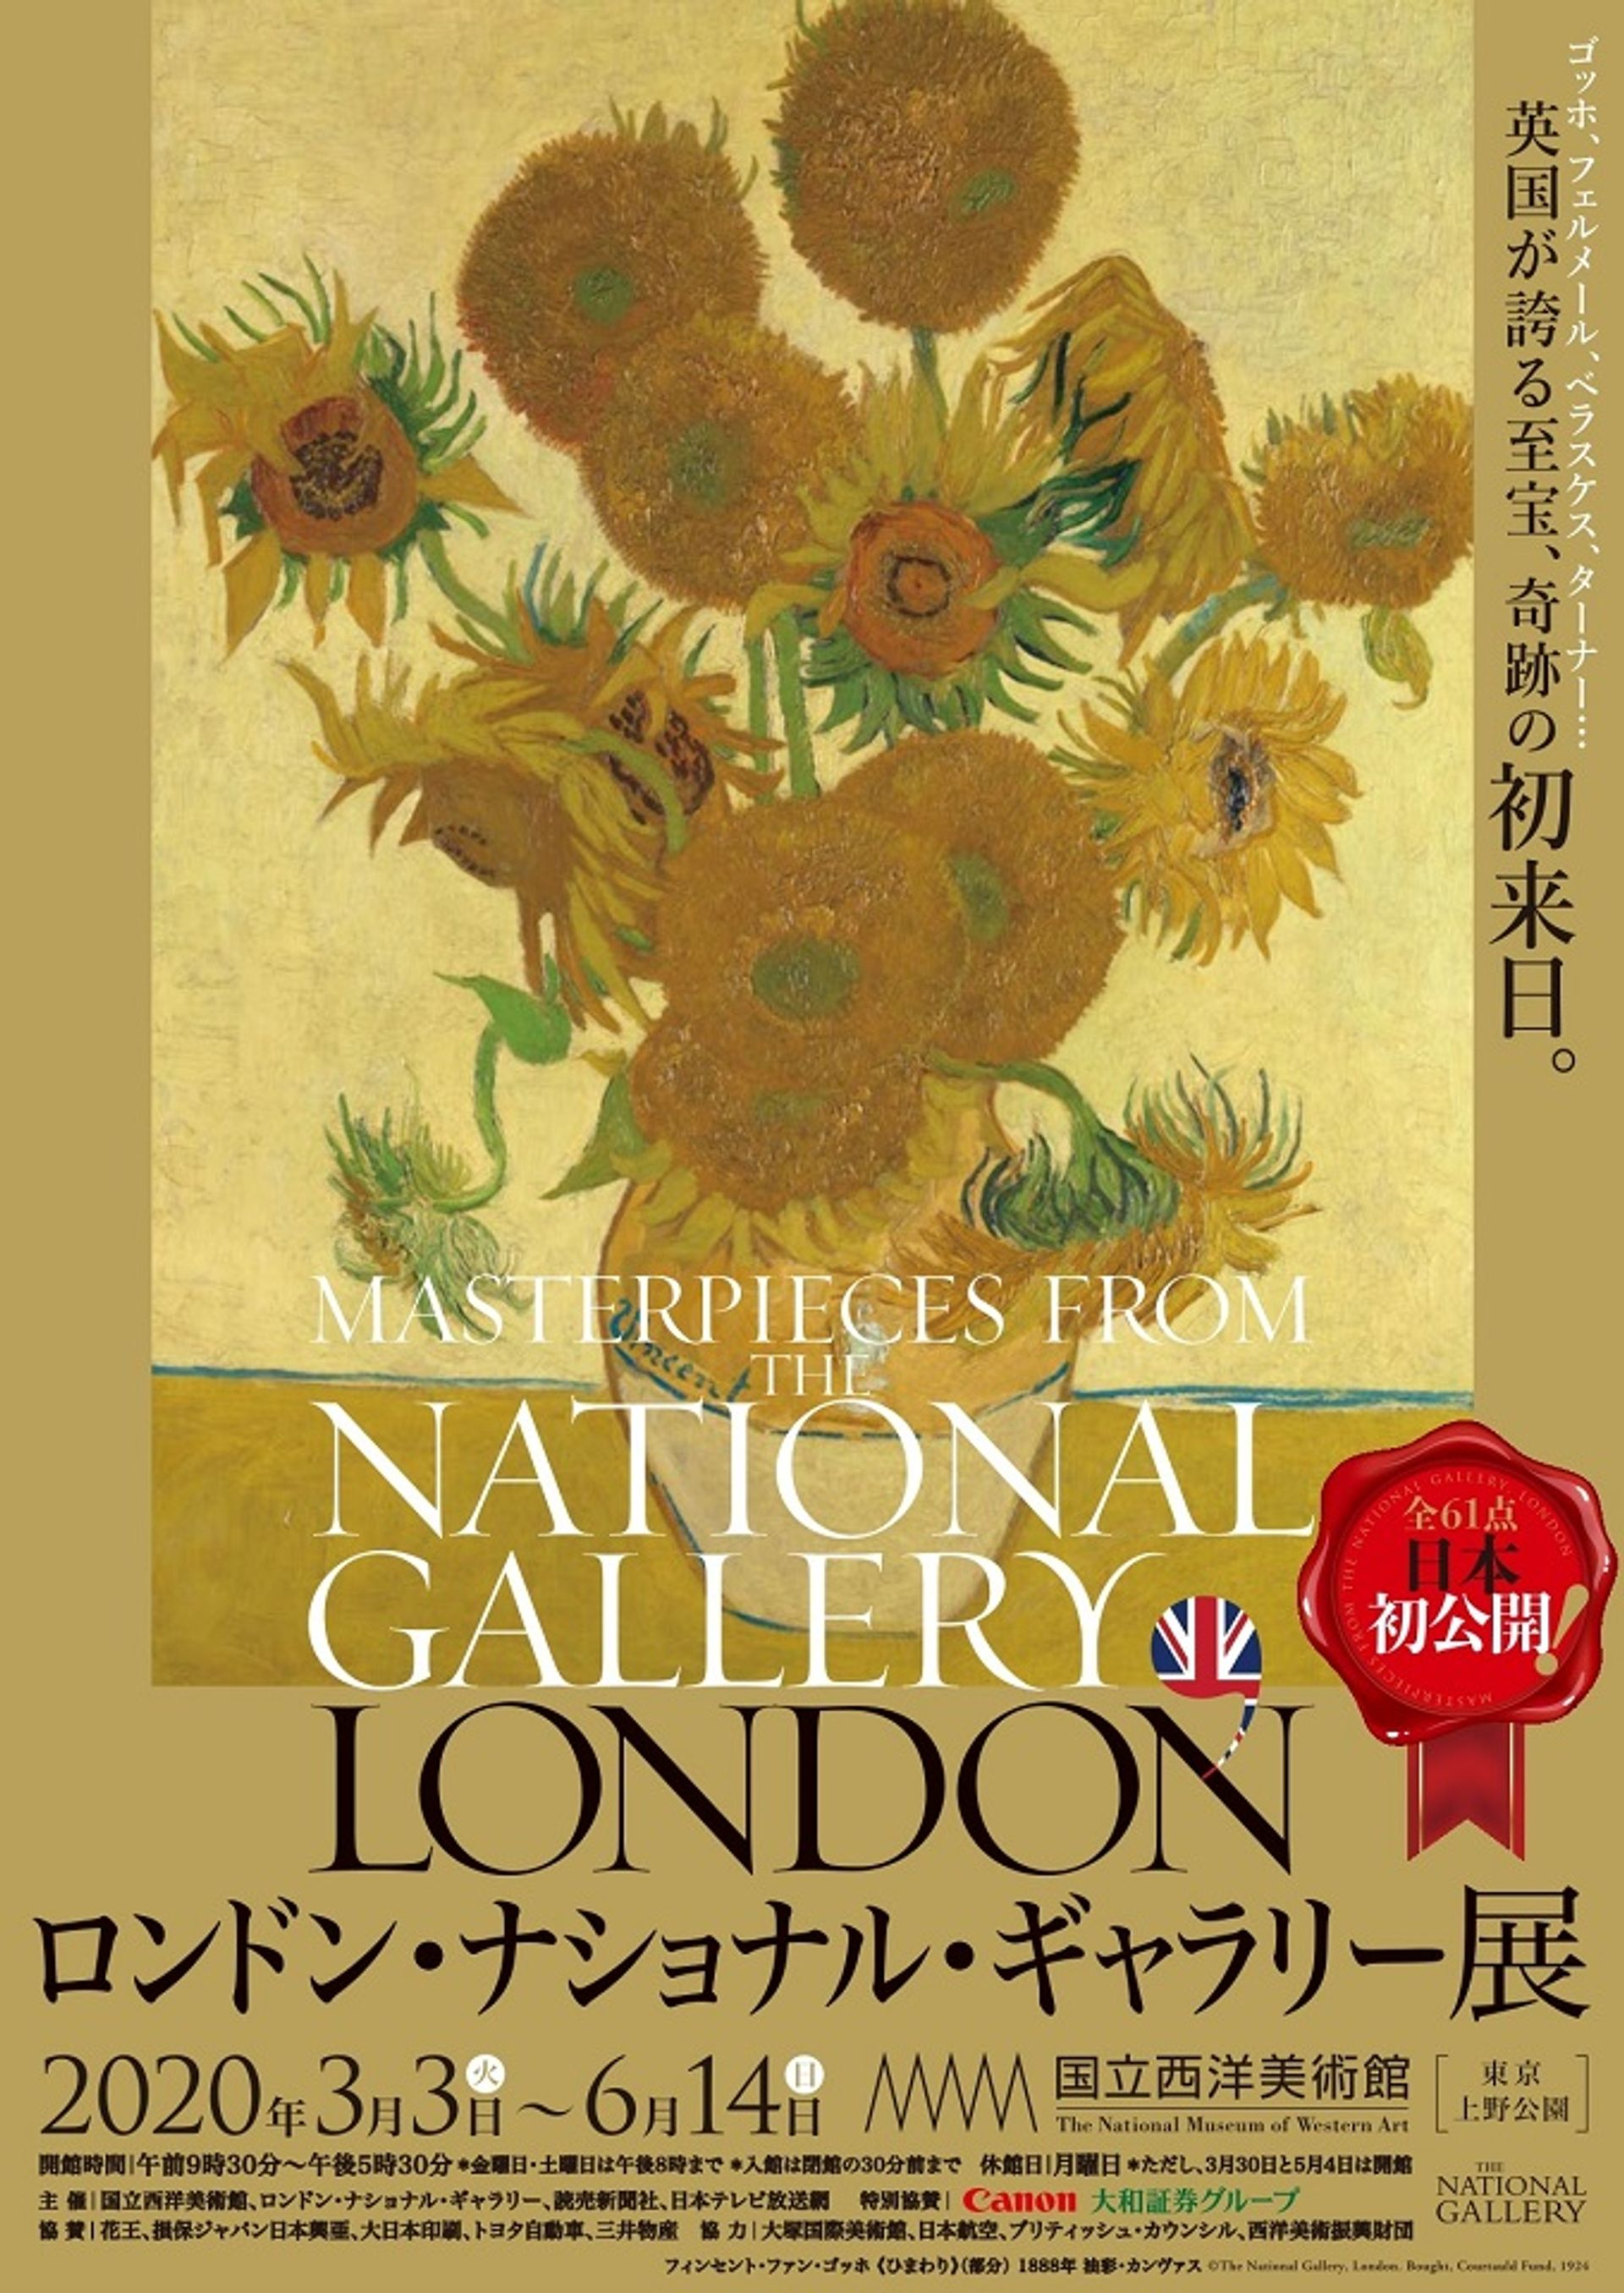 Advertising poster for Masterpieces from the National Gallery, London at Tokyo's National Museum of Western Art, 2020